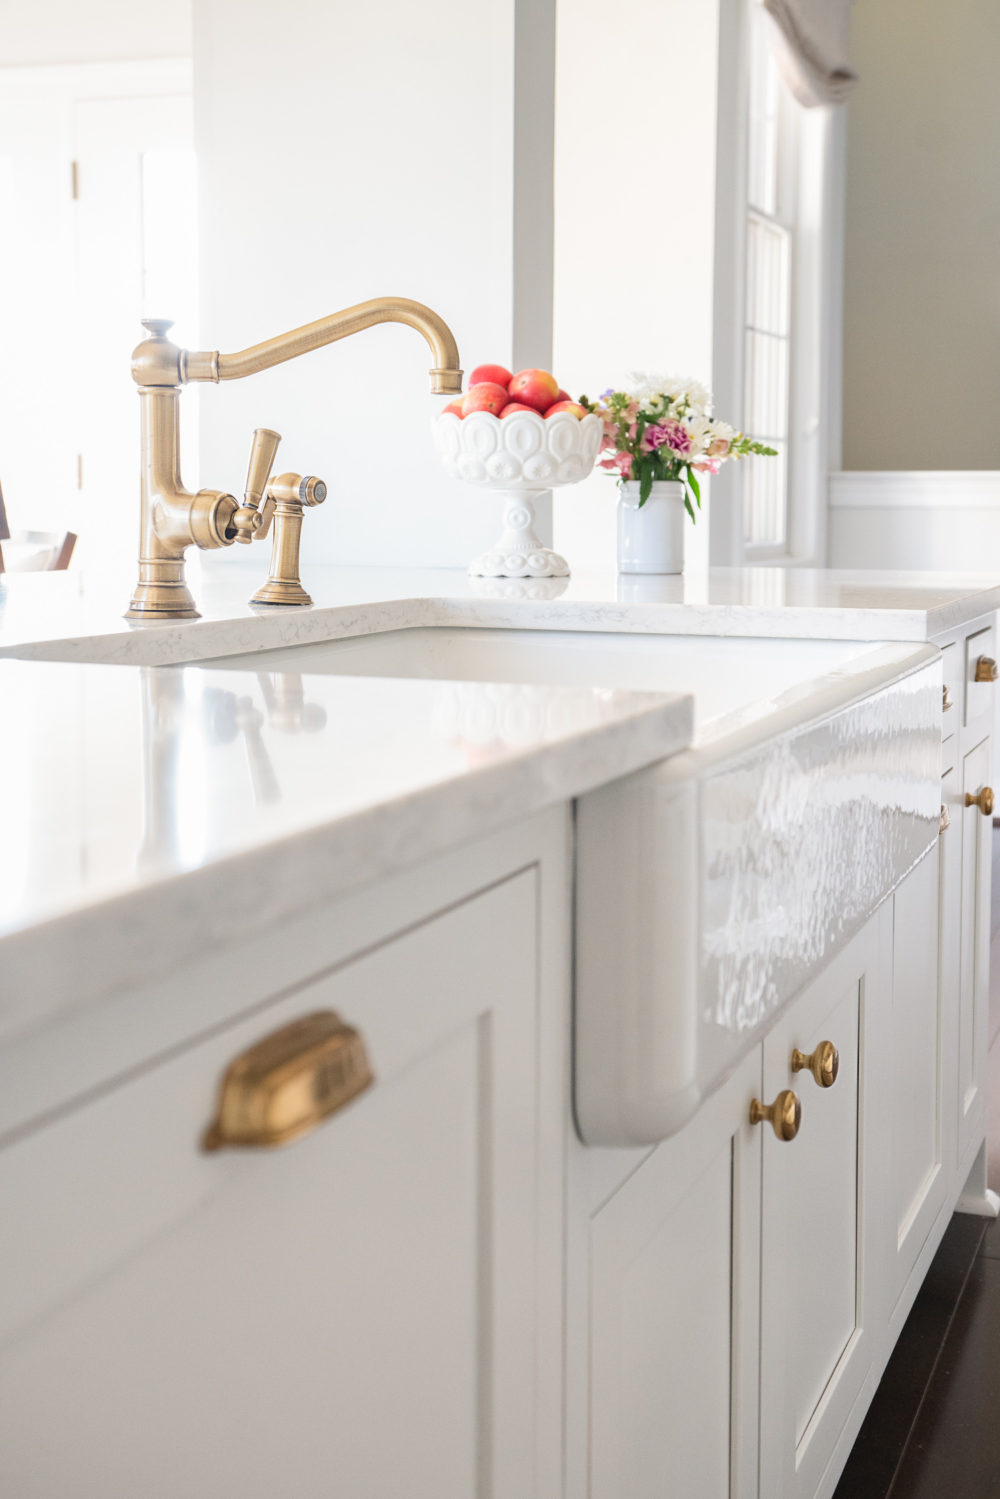 Kitchen Reveal: From Overlay to Inset... | The Blue ...